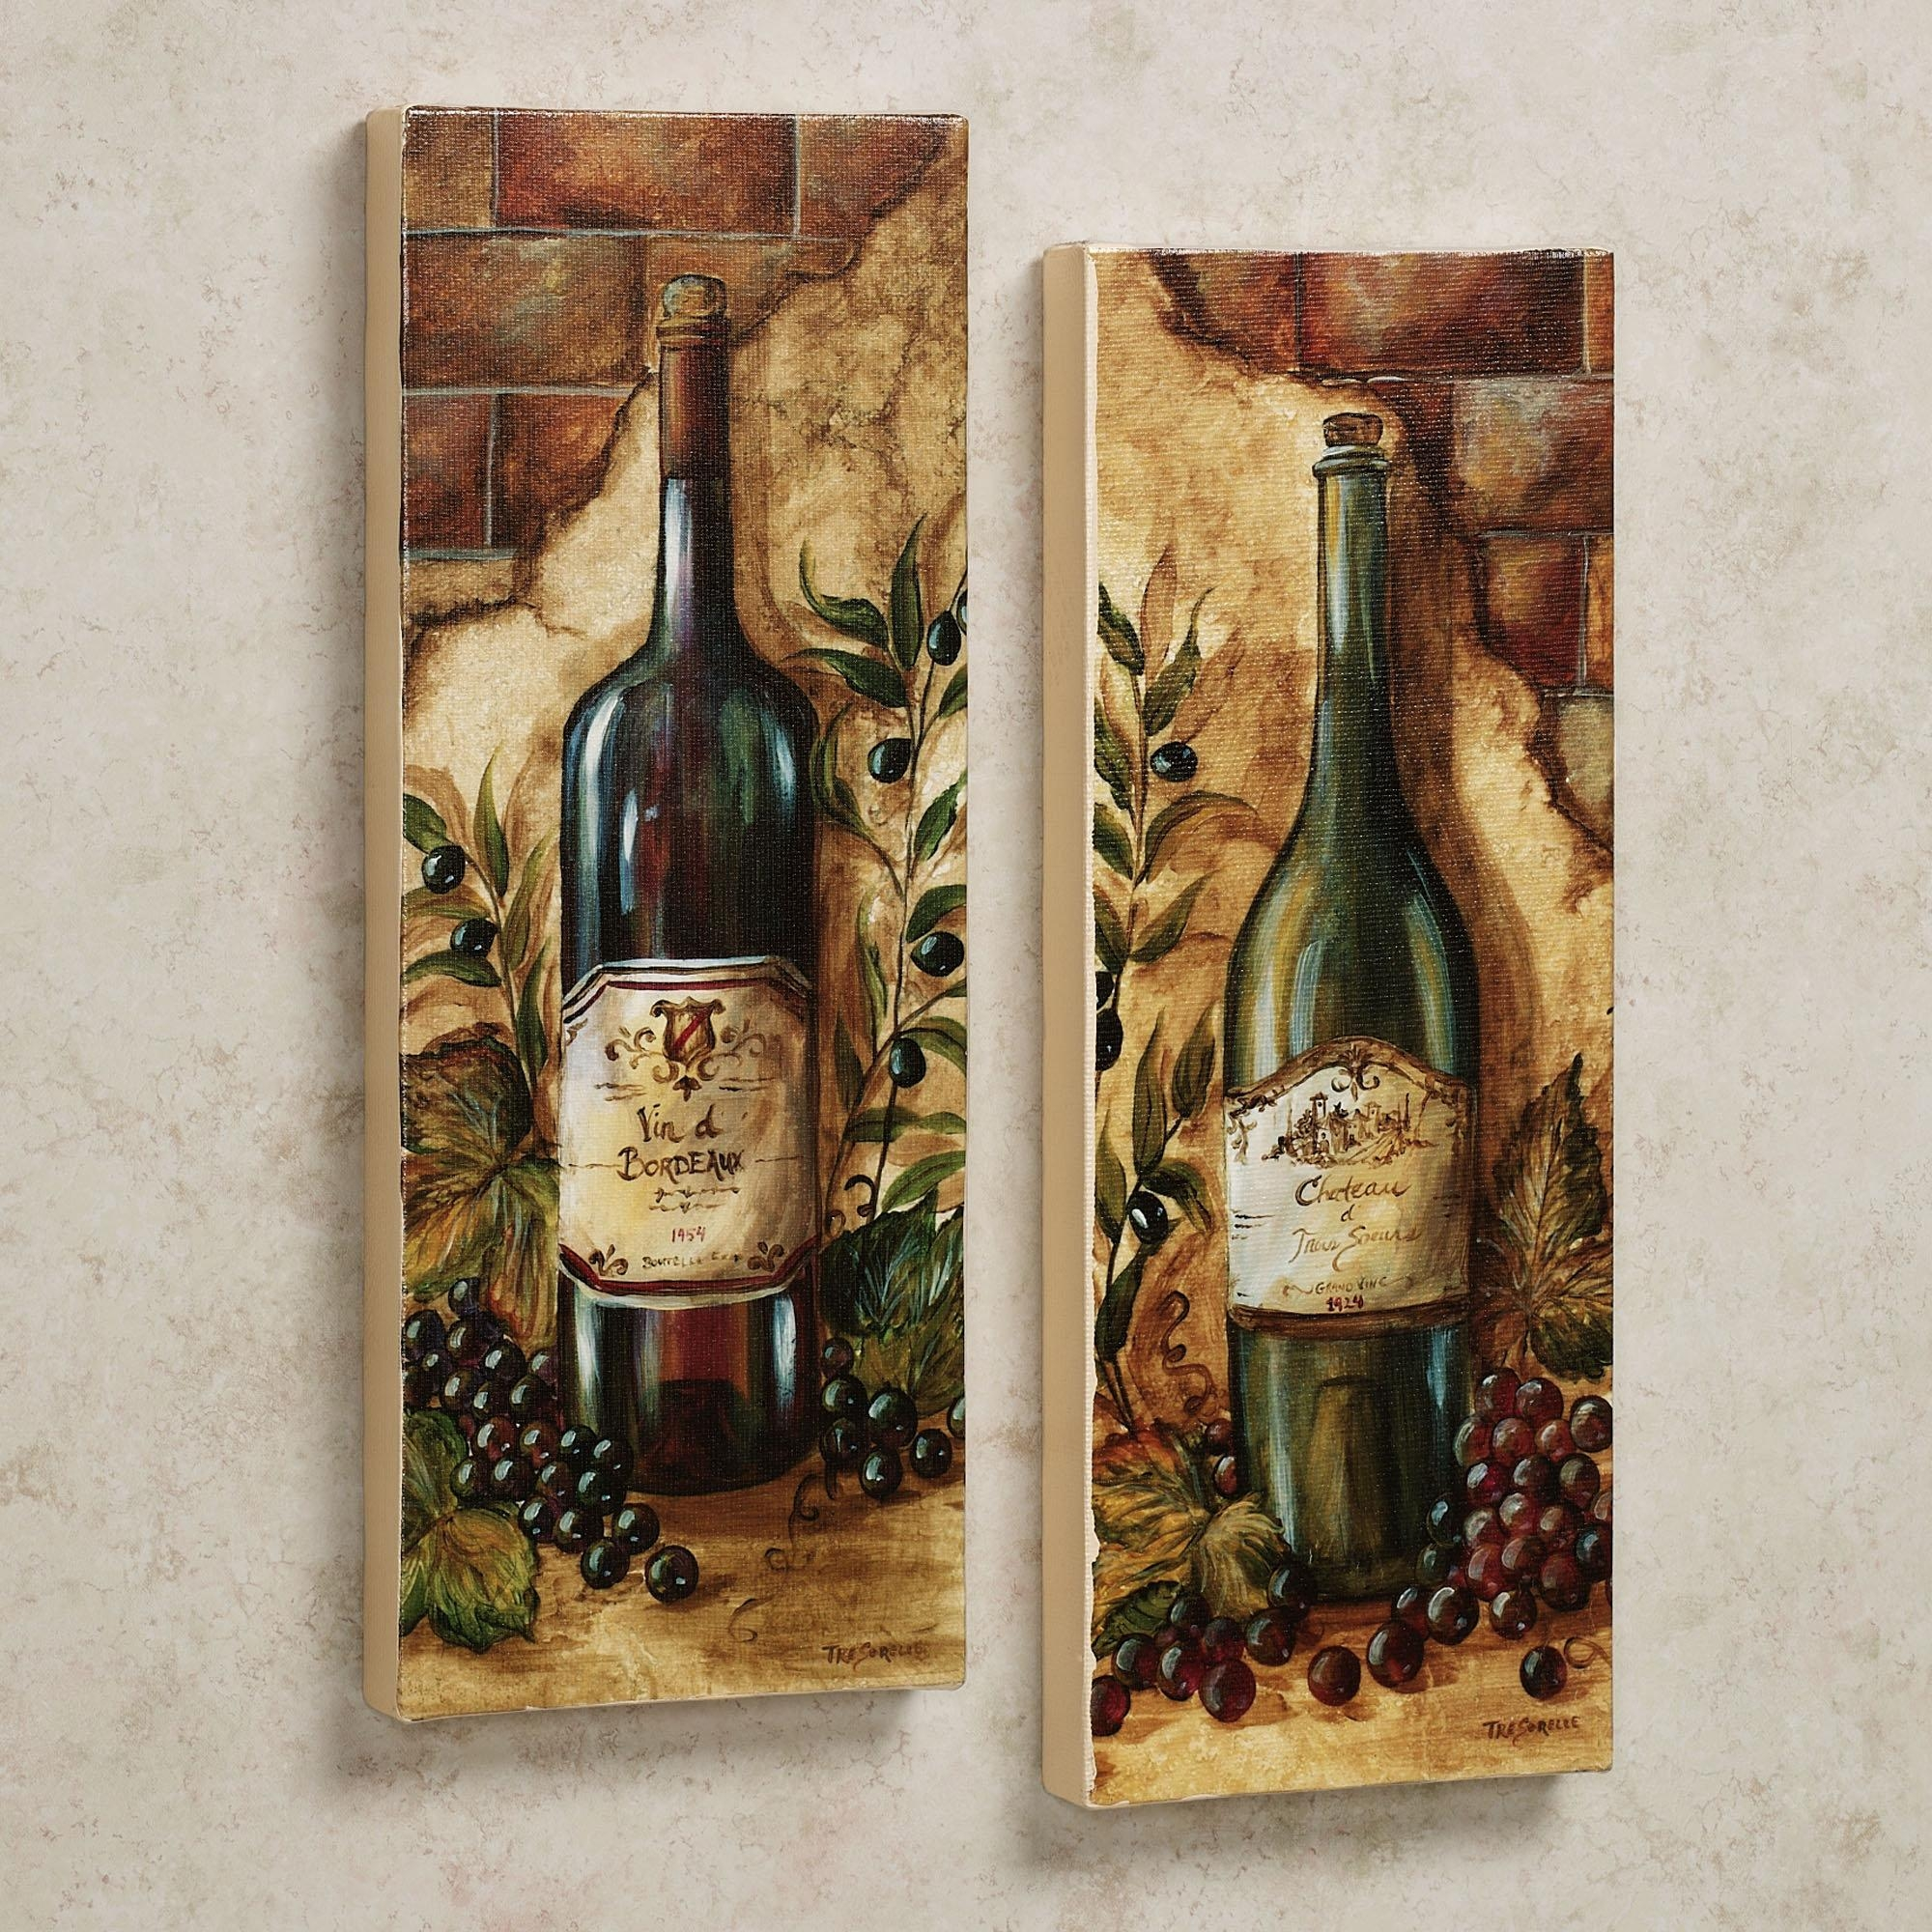 Wall Art: Glamorous Wall Decor Sets 3 Piece Framed Wall Art, 3 With Regard To Kitchen Wall Art Sets (Image 18 of 20)